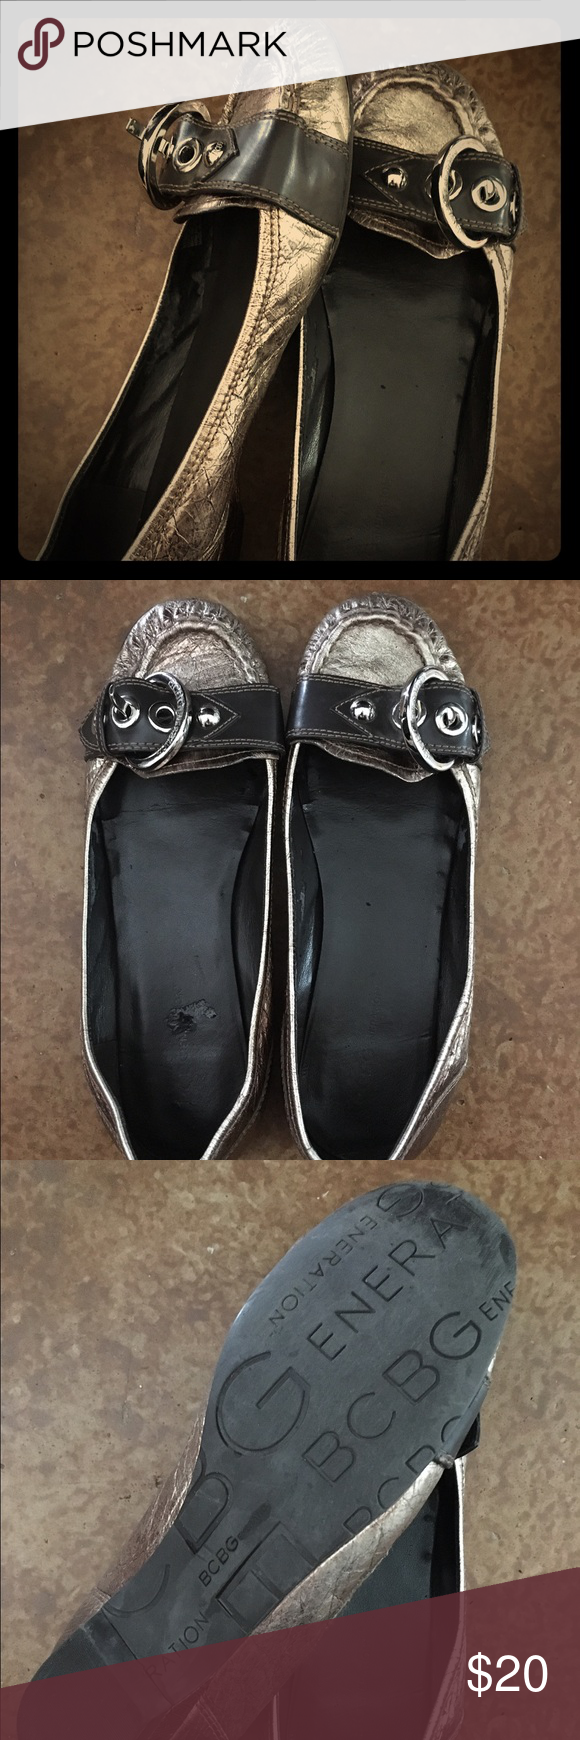 BCBGeneration Flats Brown, leather BCBG flats with gold front bucket closure. Good condition but inside of shoes do have a few blemishes. BCBGeneration Shoes Flats & Loafers